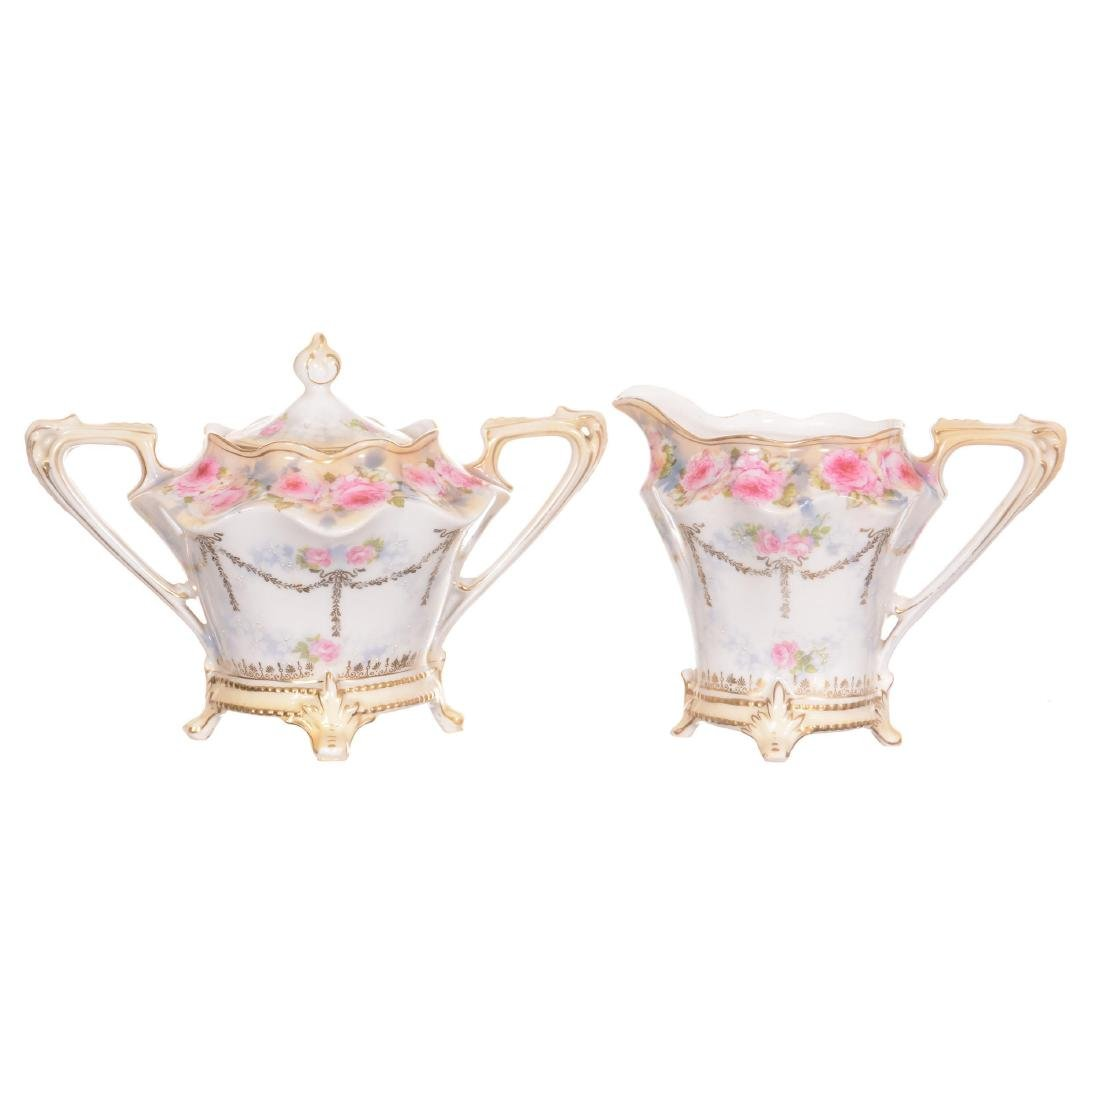 RSP Footed Creamer and Sugar